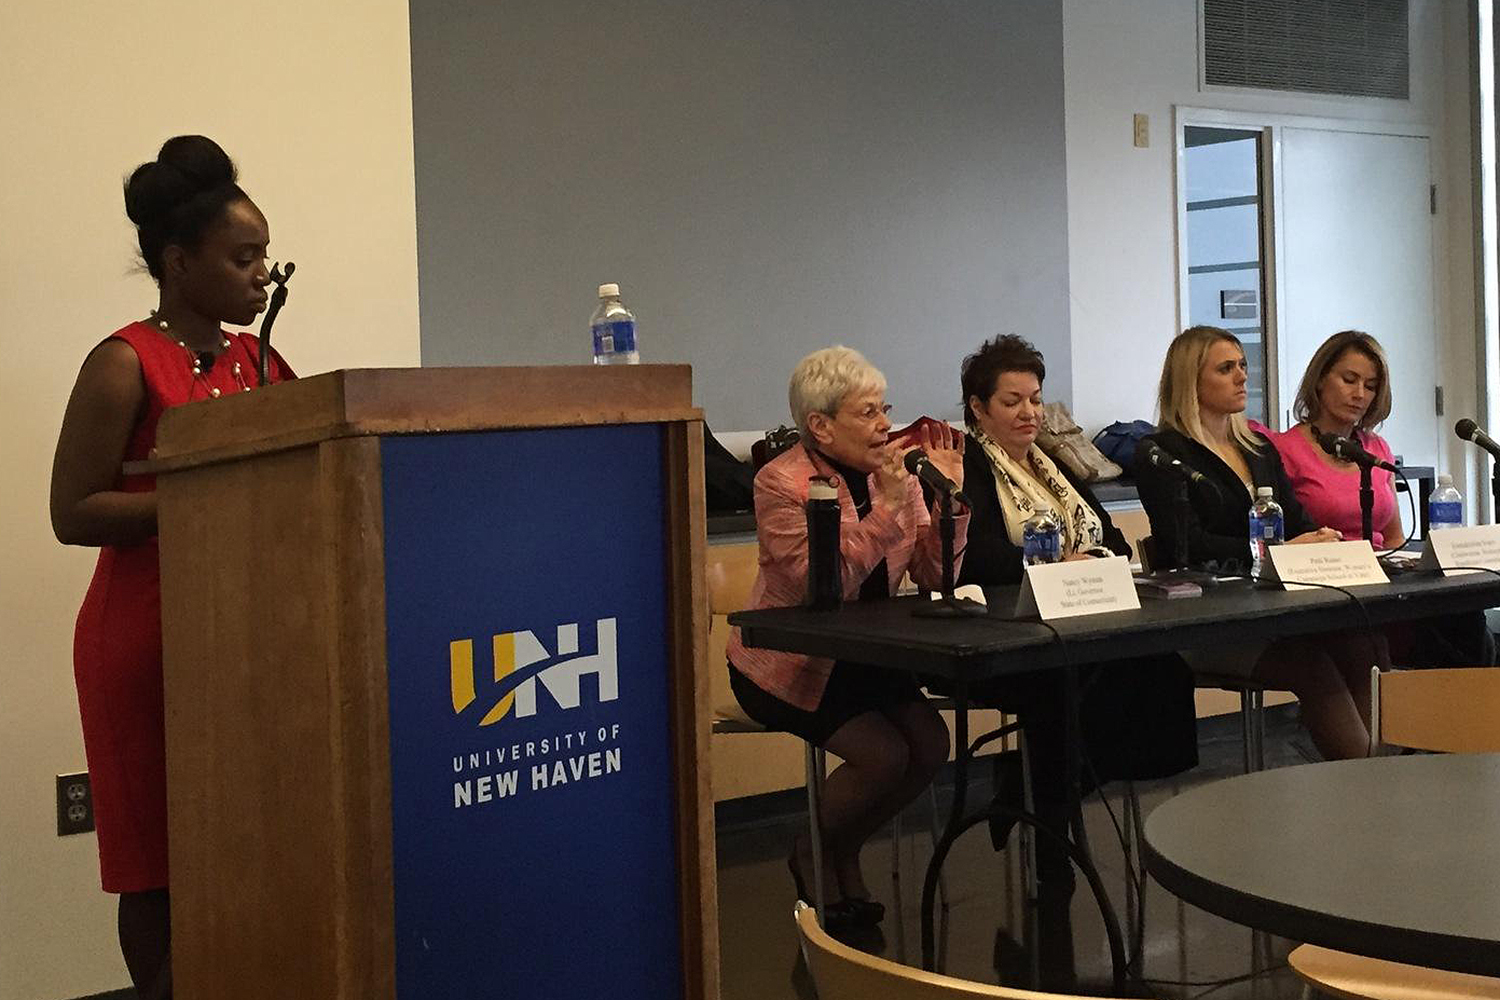 """It was not, for the most part, polarized, and we answered questions about what holds women back from getting involved in politics and how to galvanize younger women today into getting more involved,"" Sveen said of the panel."